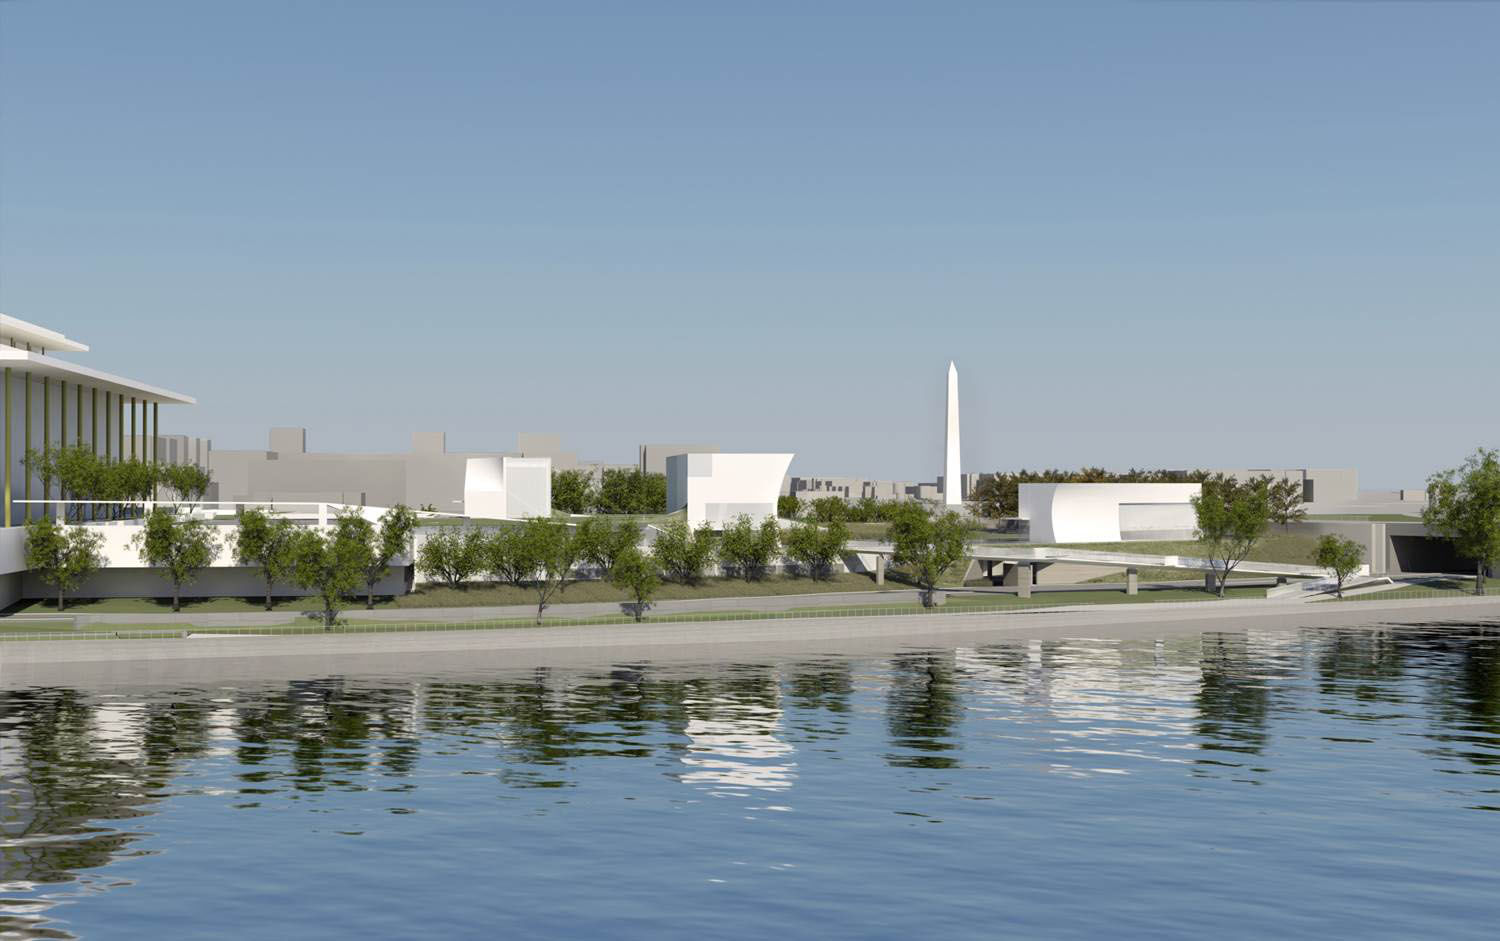 Here's a view of the planned scenic walkway connecting the Kennedy Center with the Potomac River and nearby memorials. (Courtesy Steven Holl Architects via the Kennedy Center)